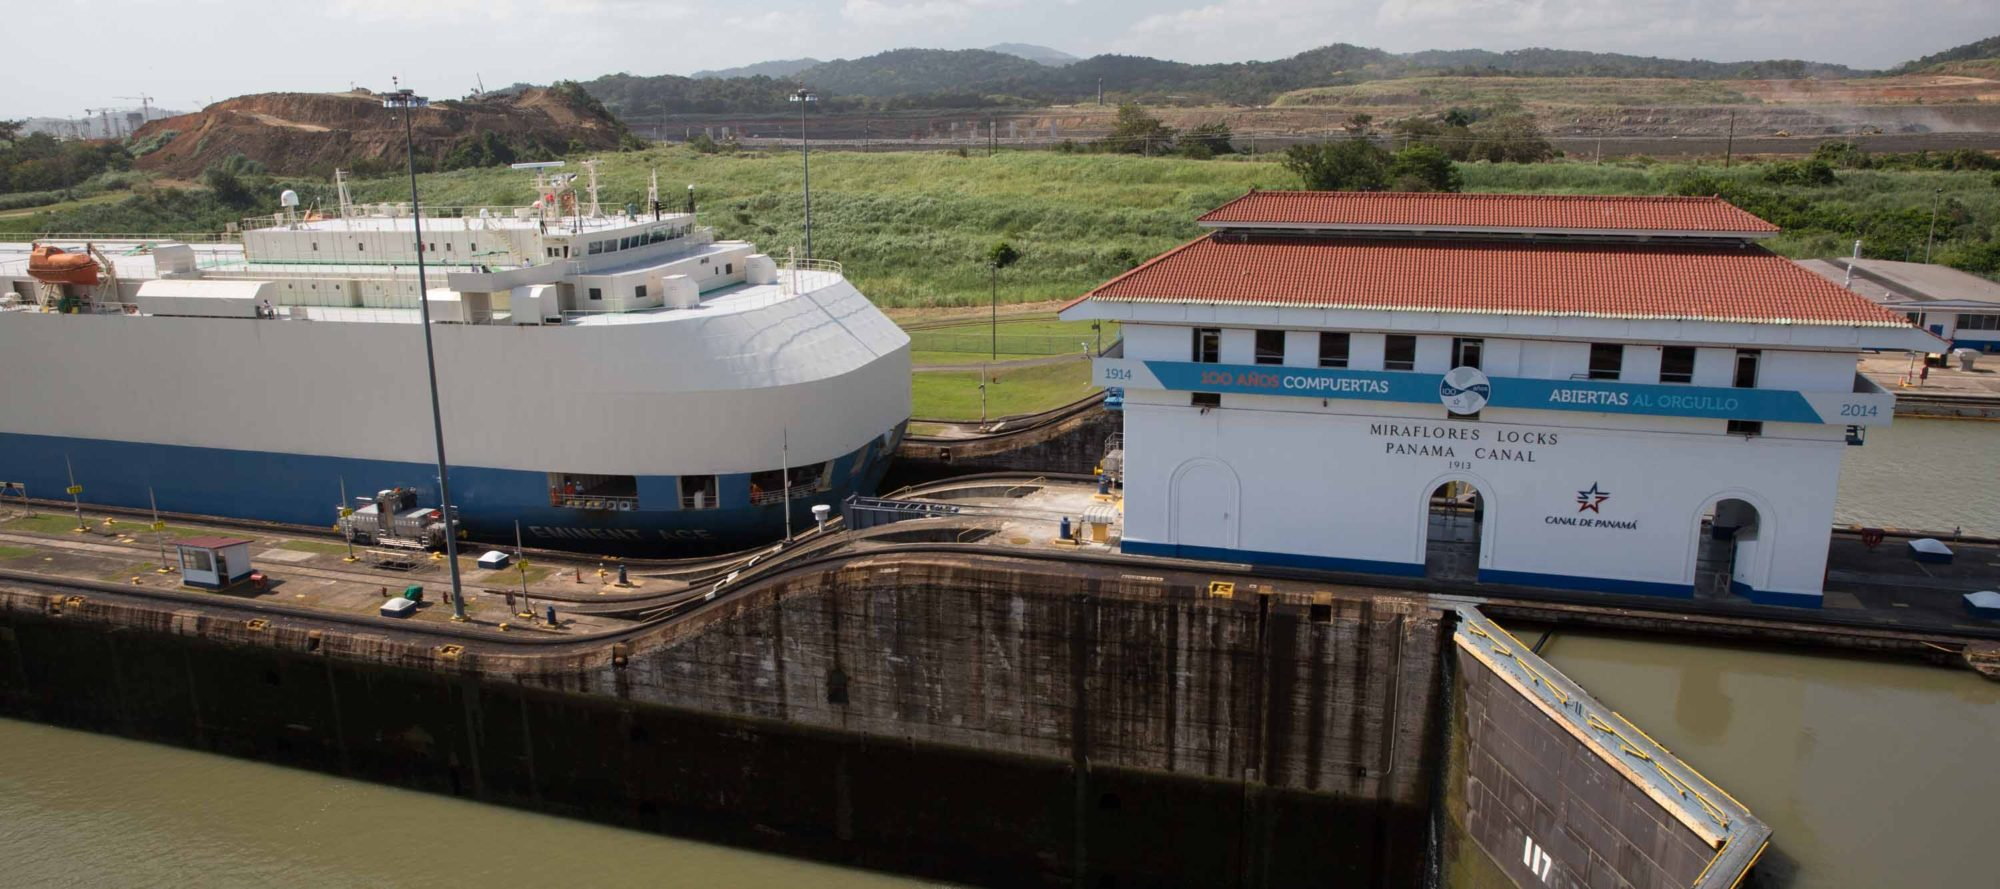 Miraflores Locks of the Panama Canal